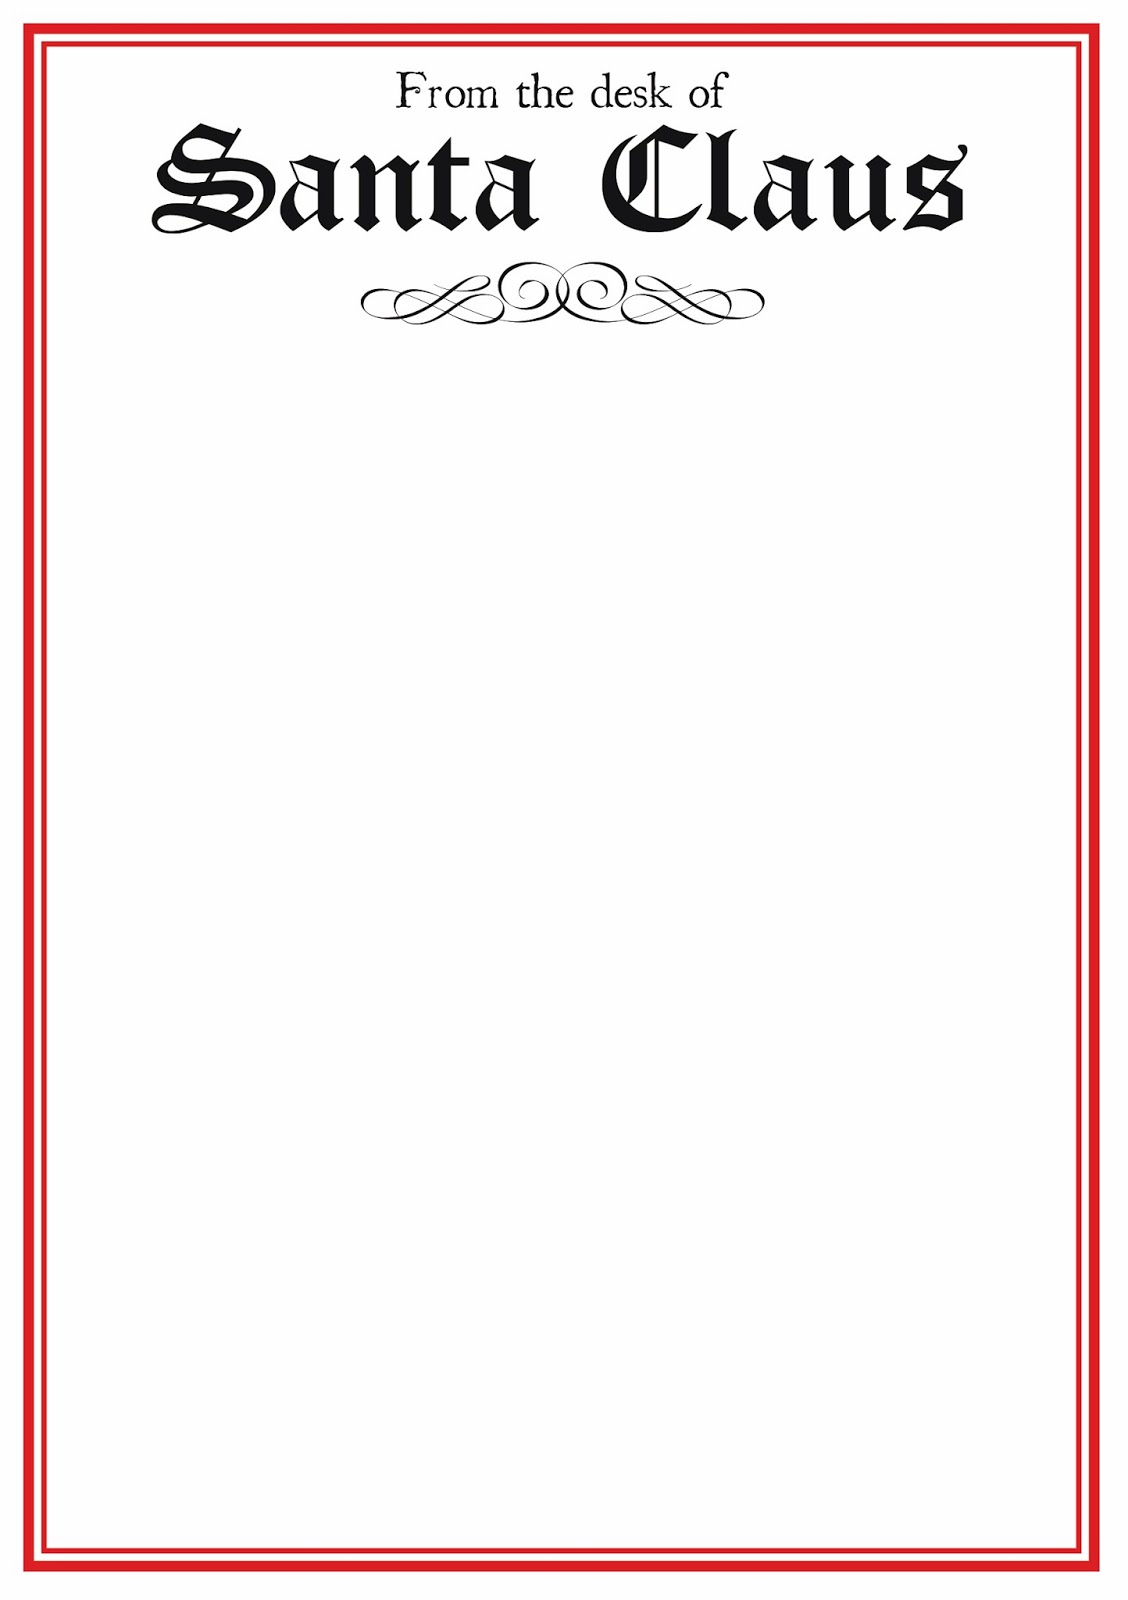 Official Letter From Santa Template - Word Santa Letter Template Acurnamedia